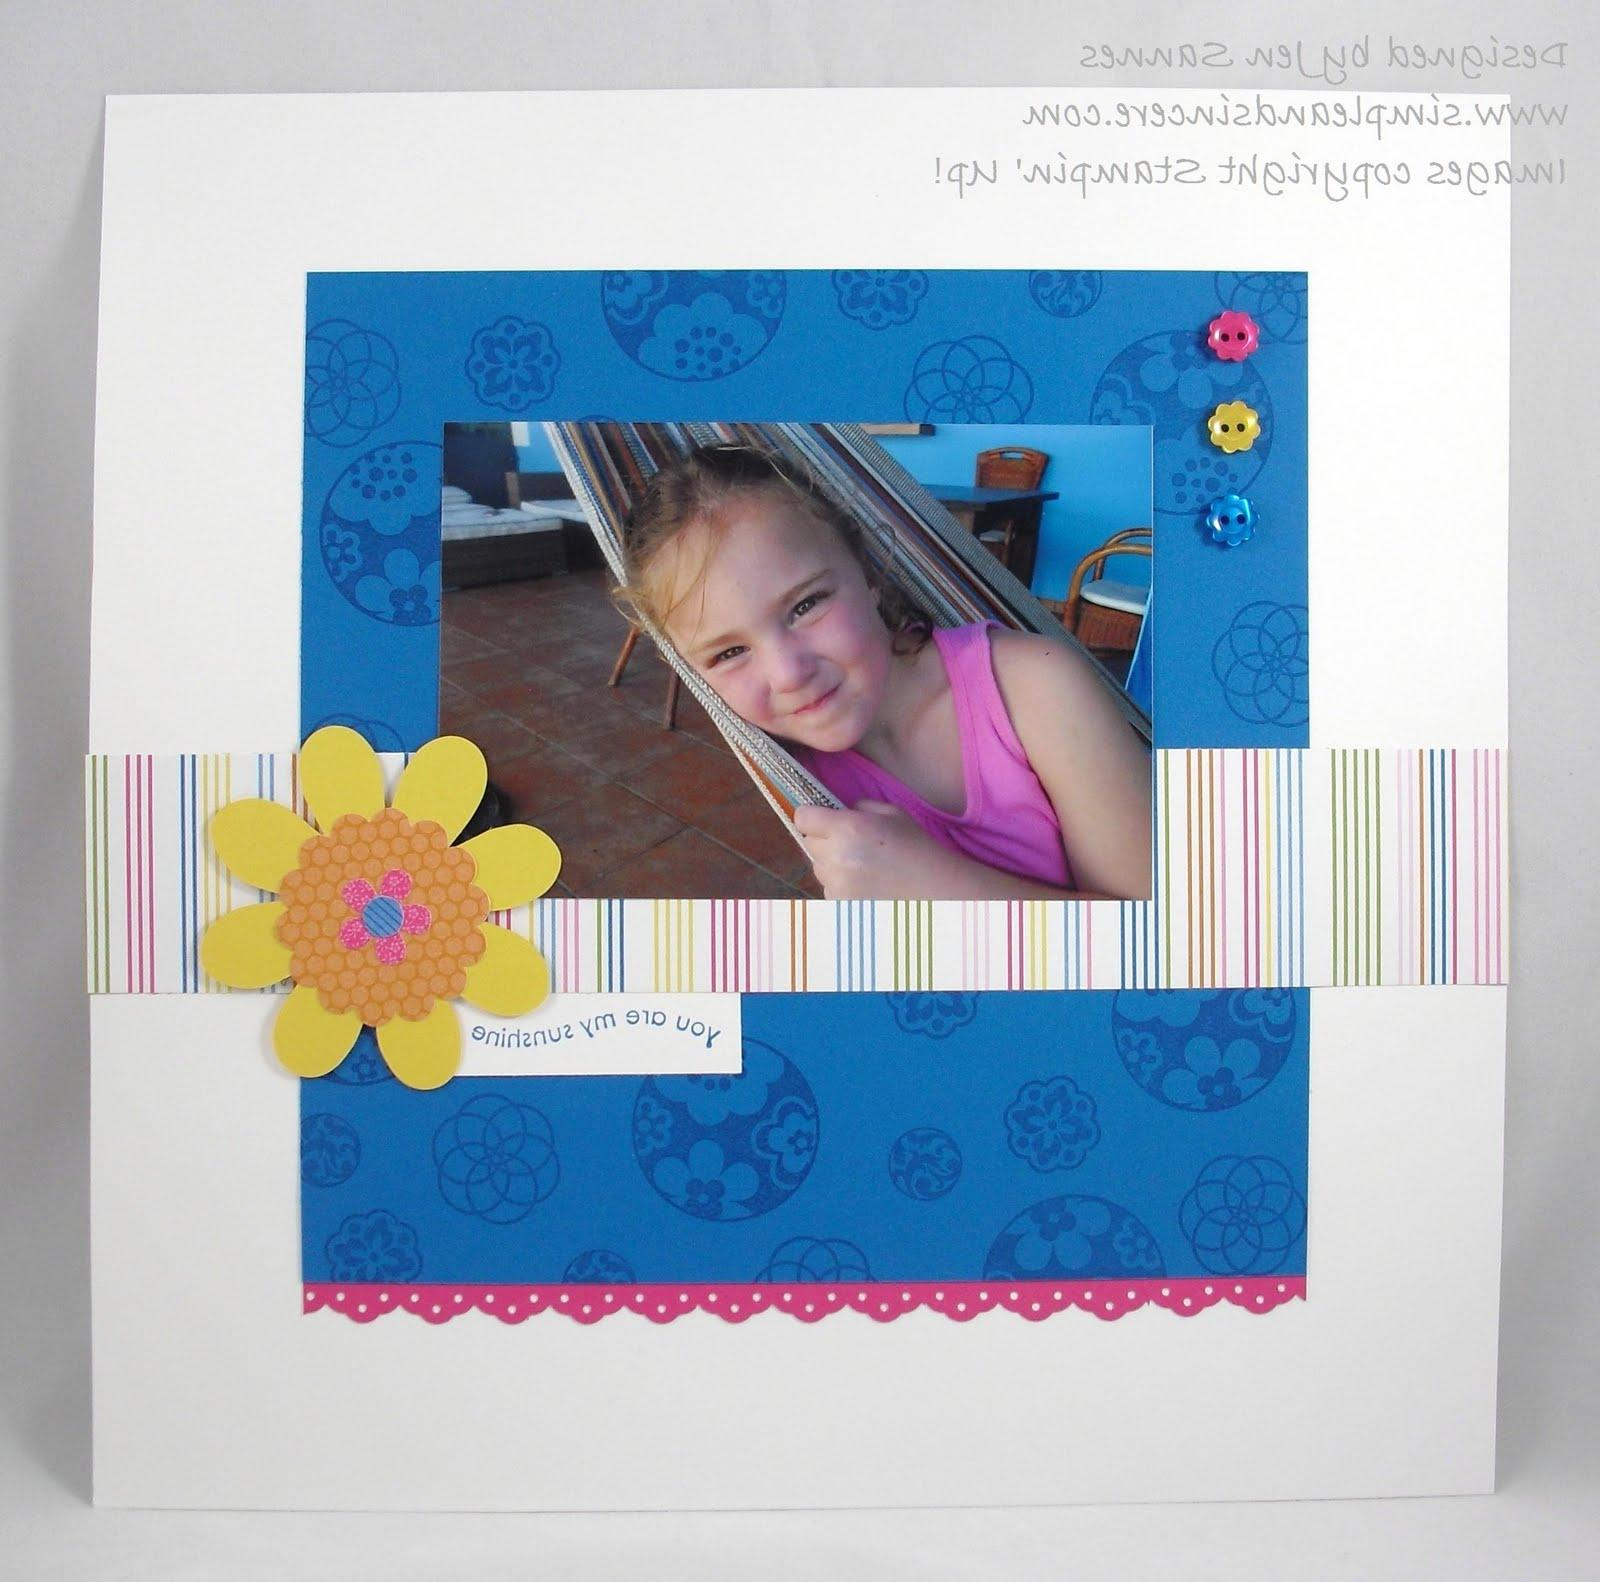 We made this scrapbook page at